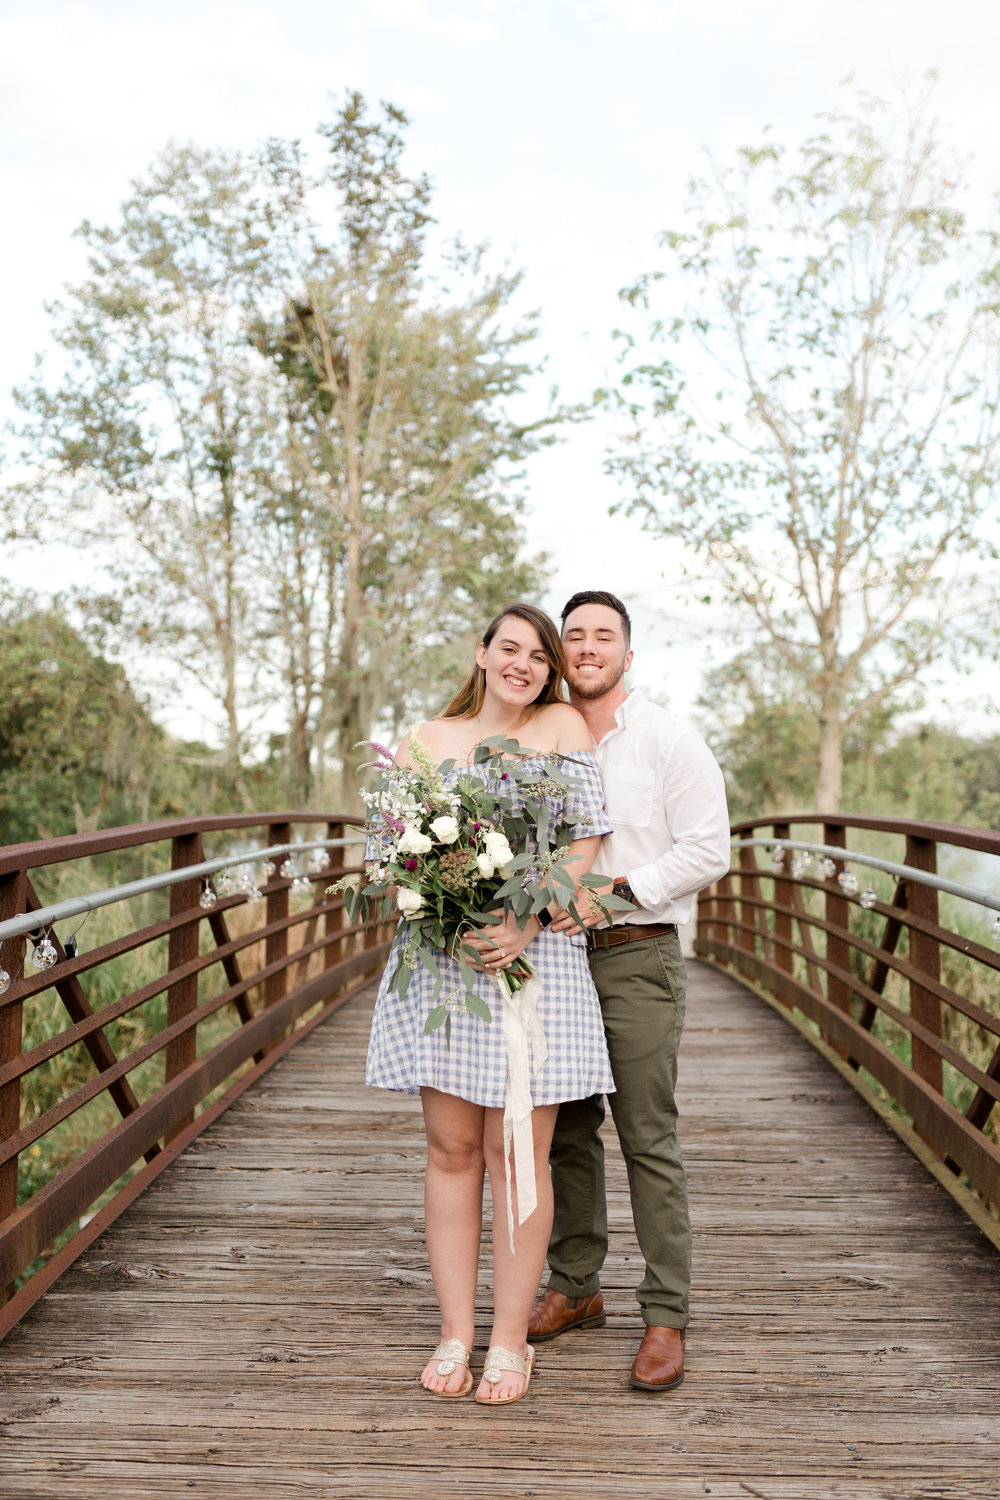 peterson-park-lakeland-engagement-photos-bouquet-carography-studios.jpg